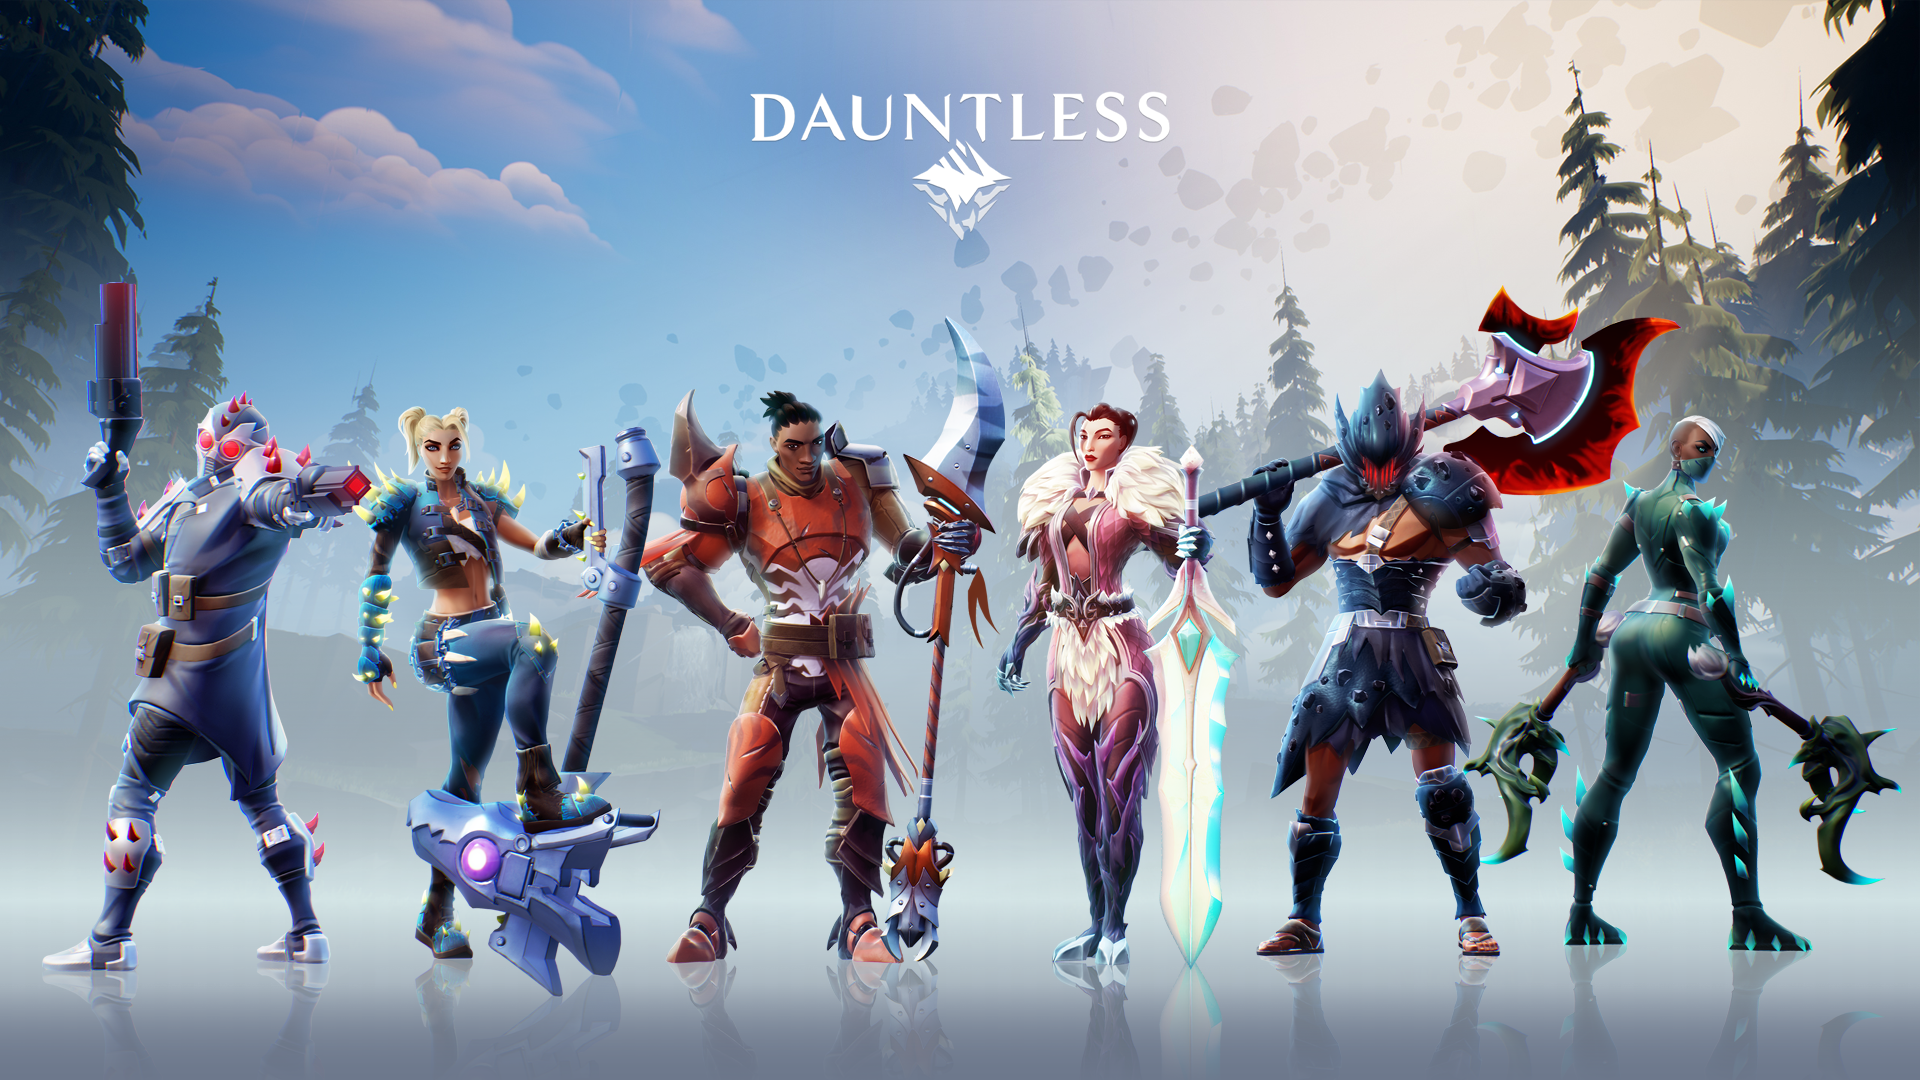 Dauntless Wallpaper, characters take from the new website